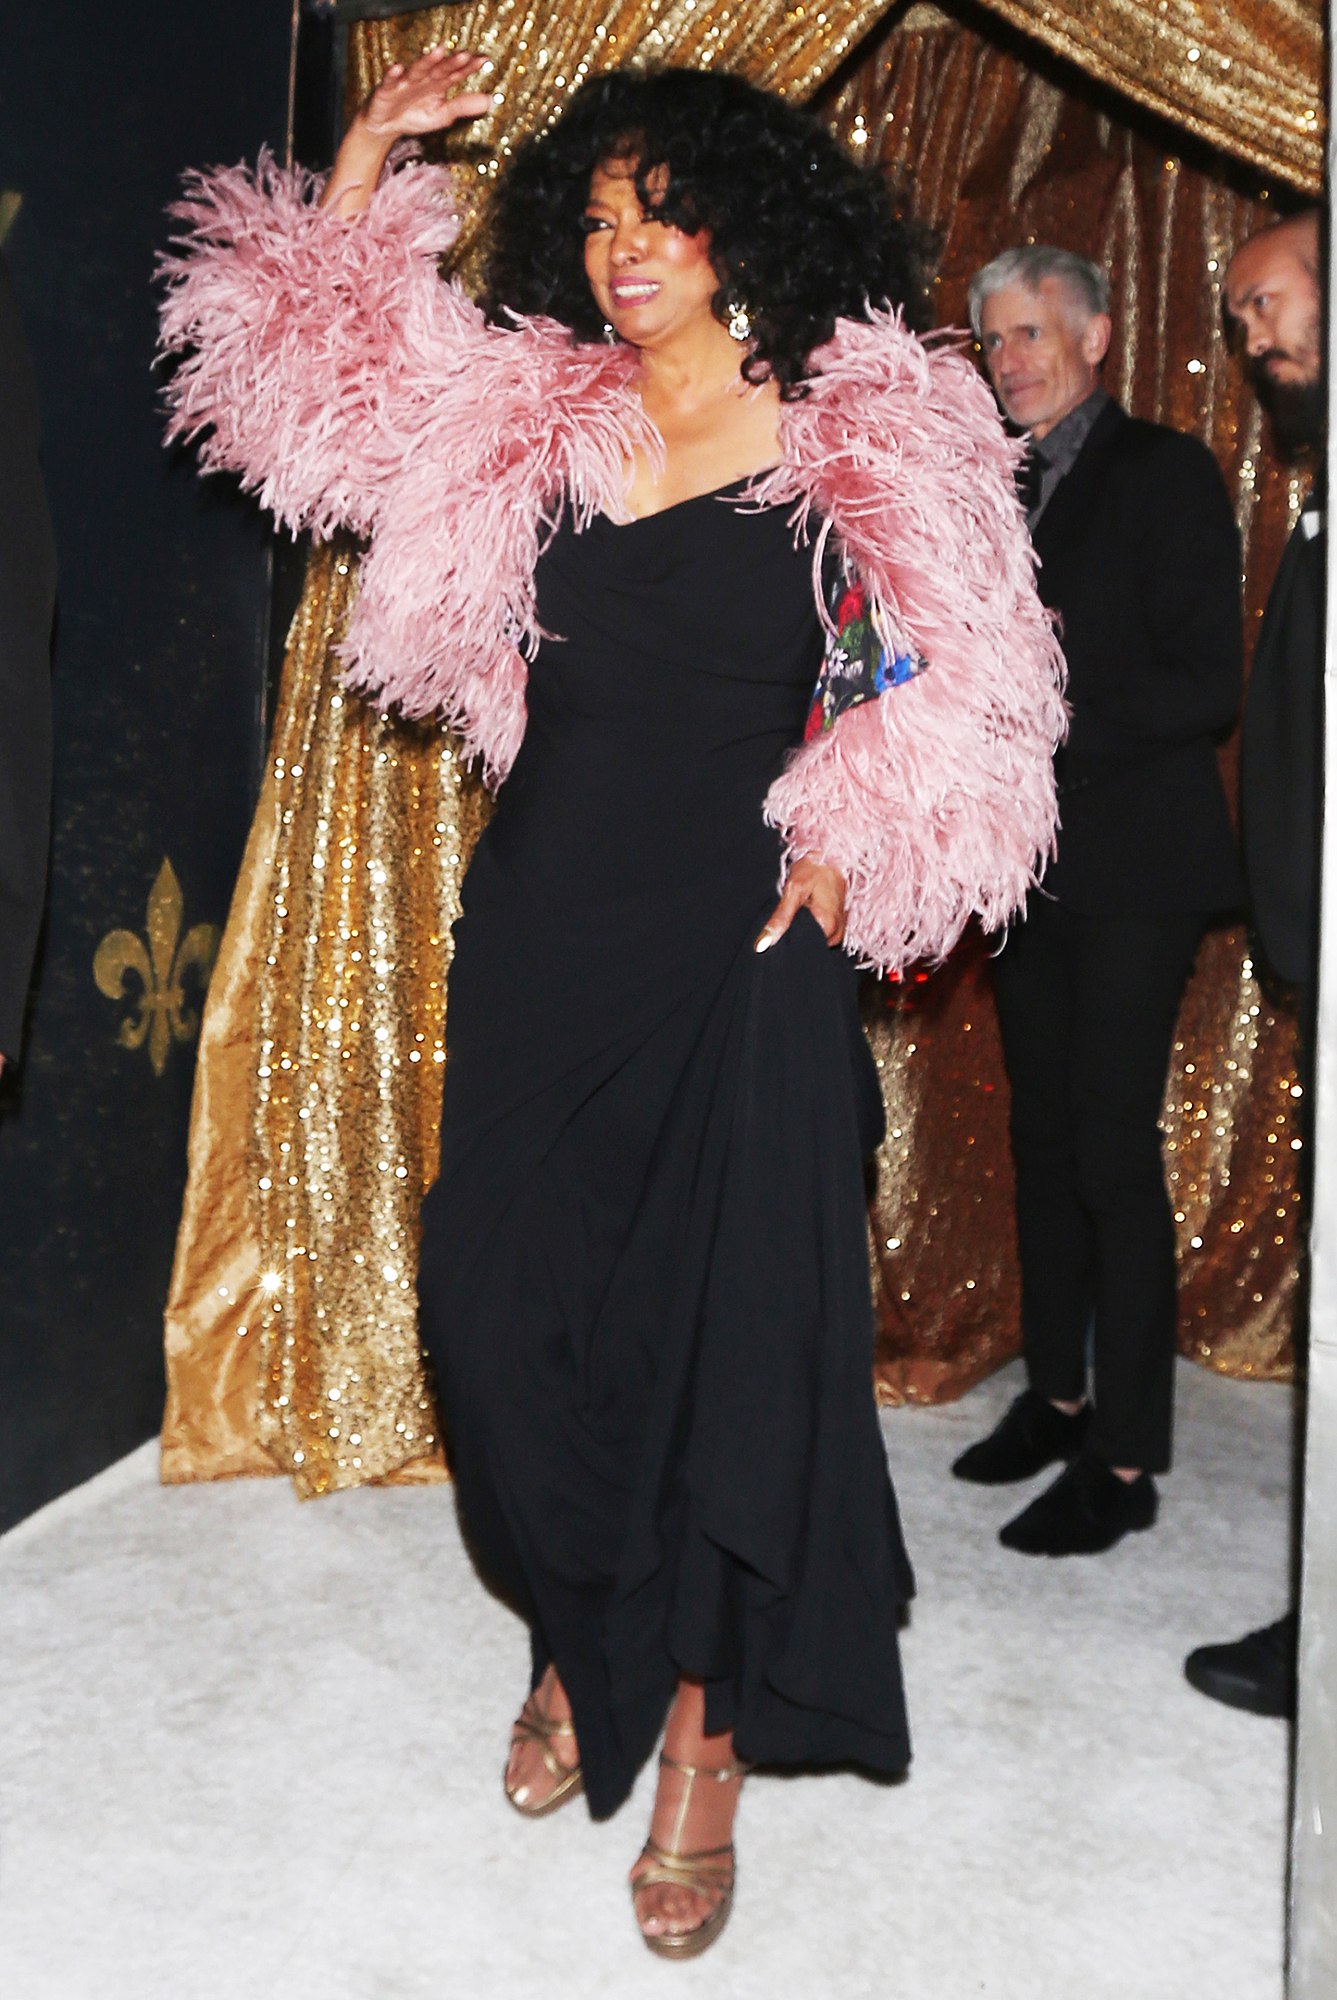 """diana-ross-birthday-bash - Diana kicked off her birthday celebration by finding out that March 26th is officially """"Diana Ross Day"""" in Los Angeles."""